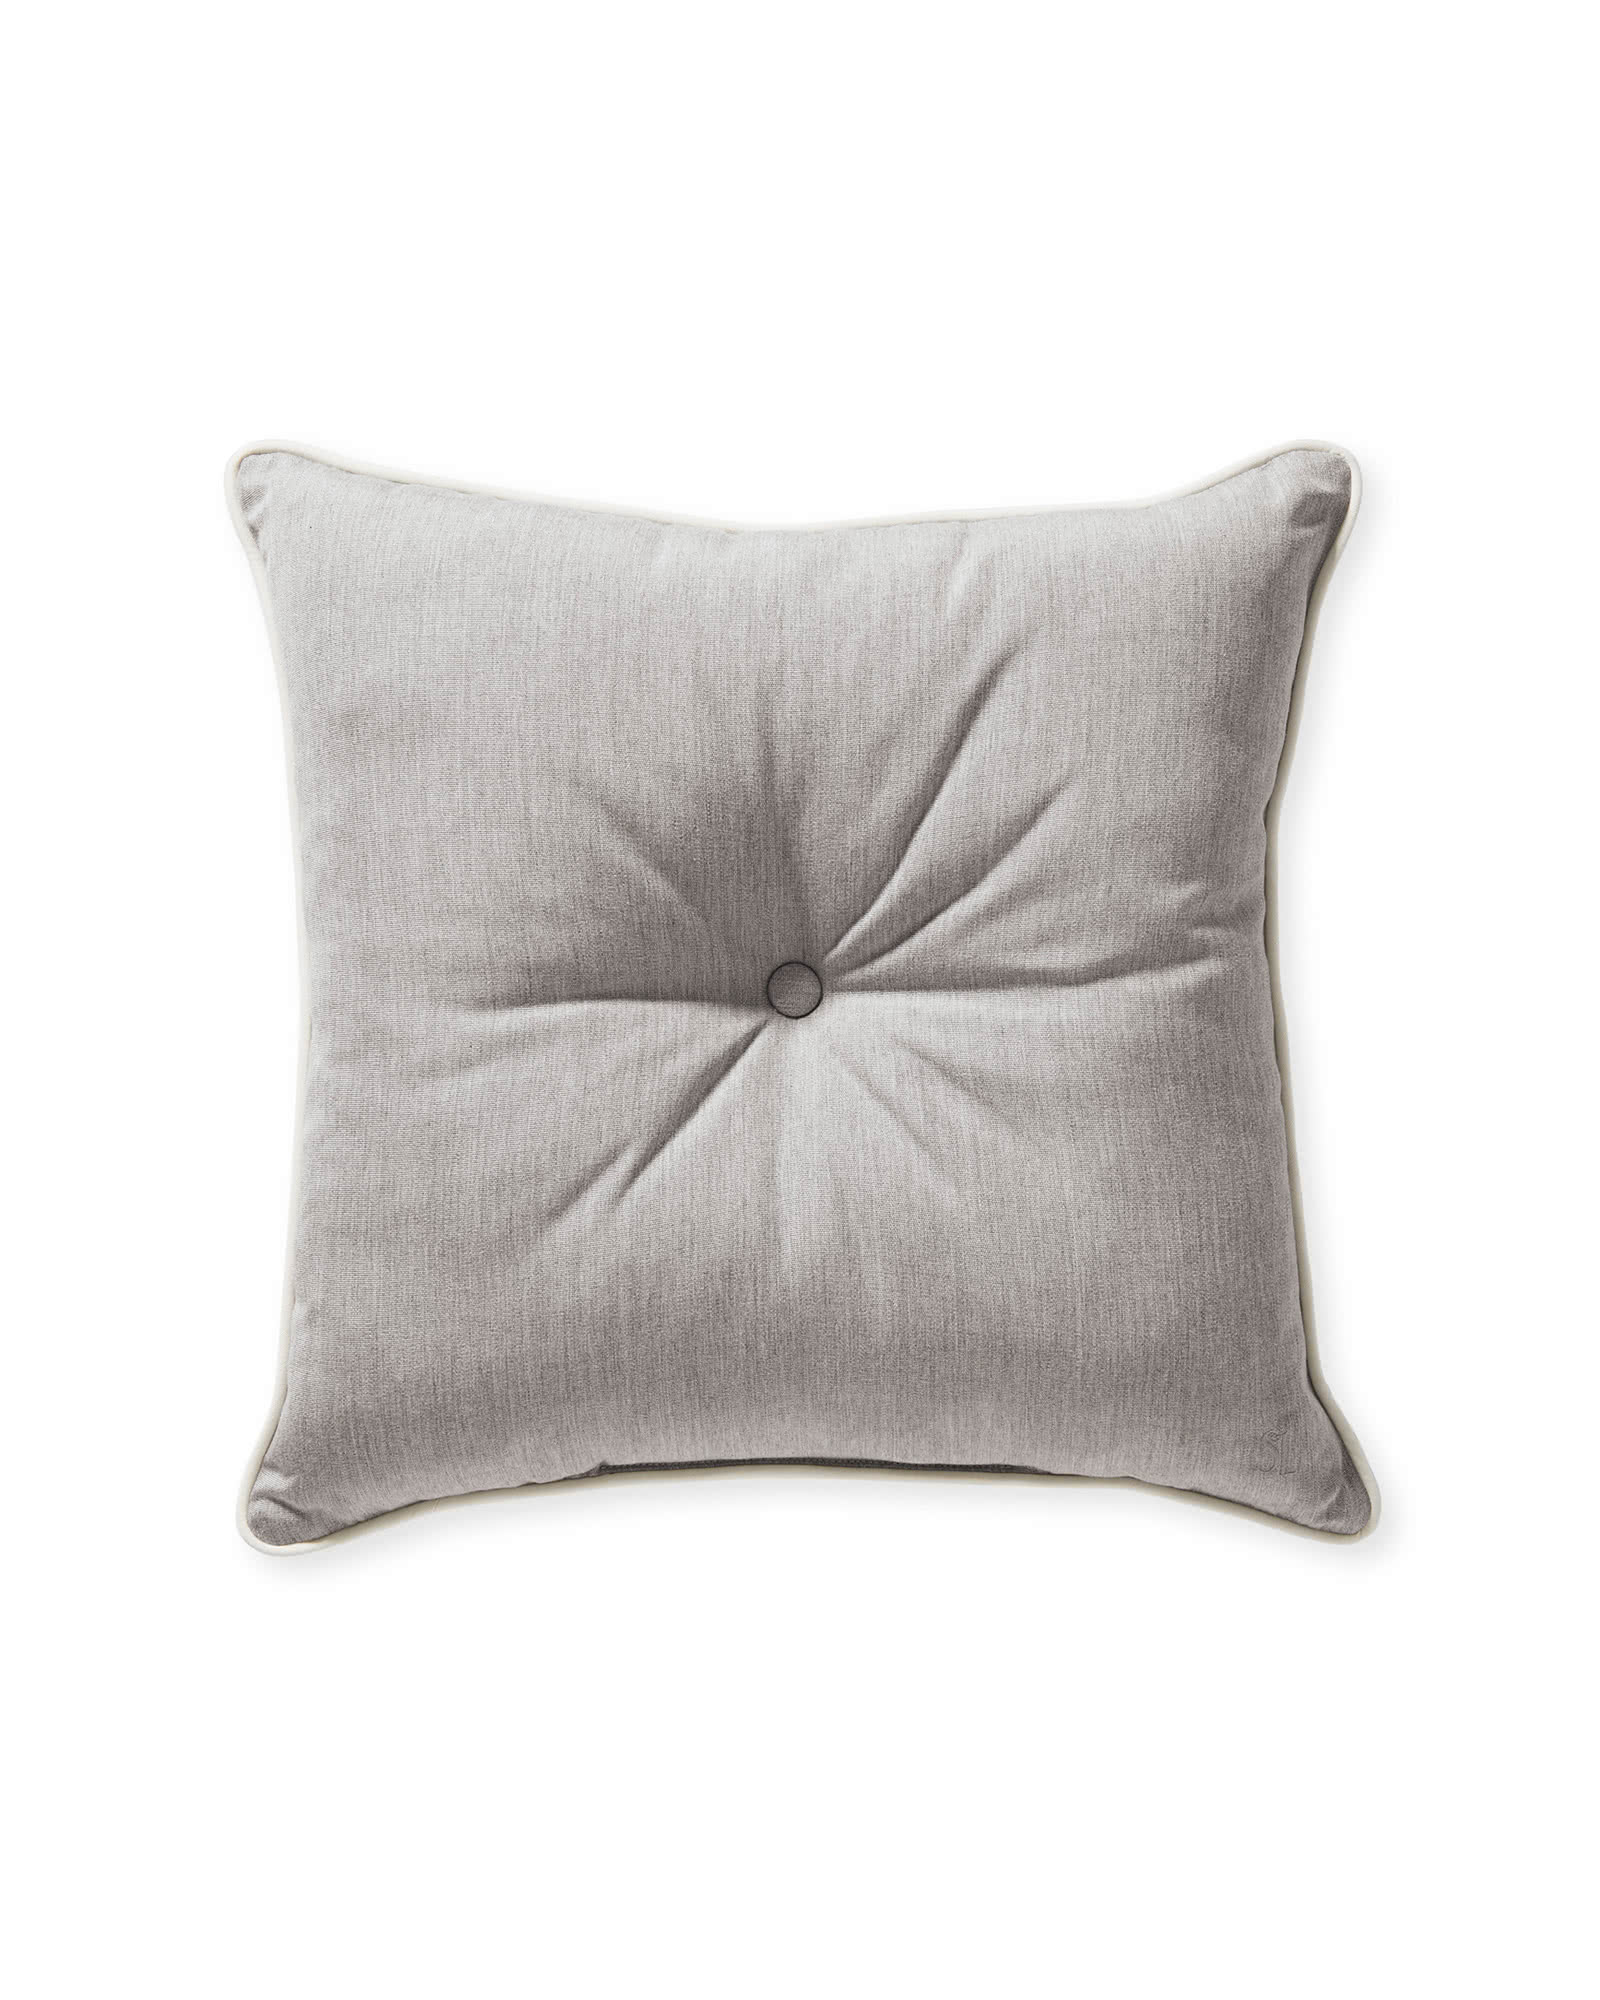 Sunbrella® Lido Pillow, Smoke